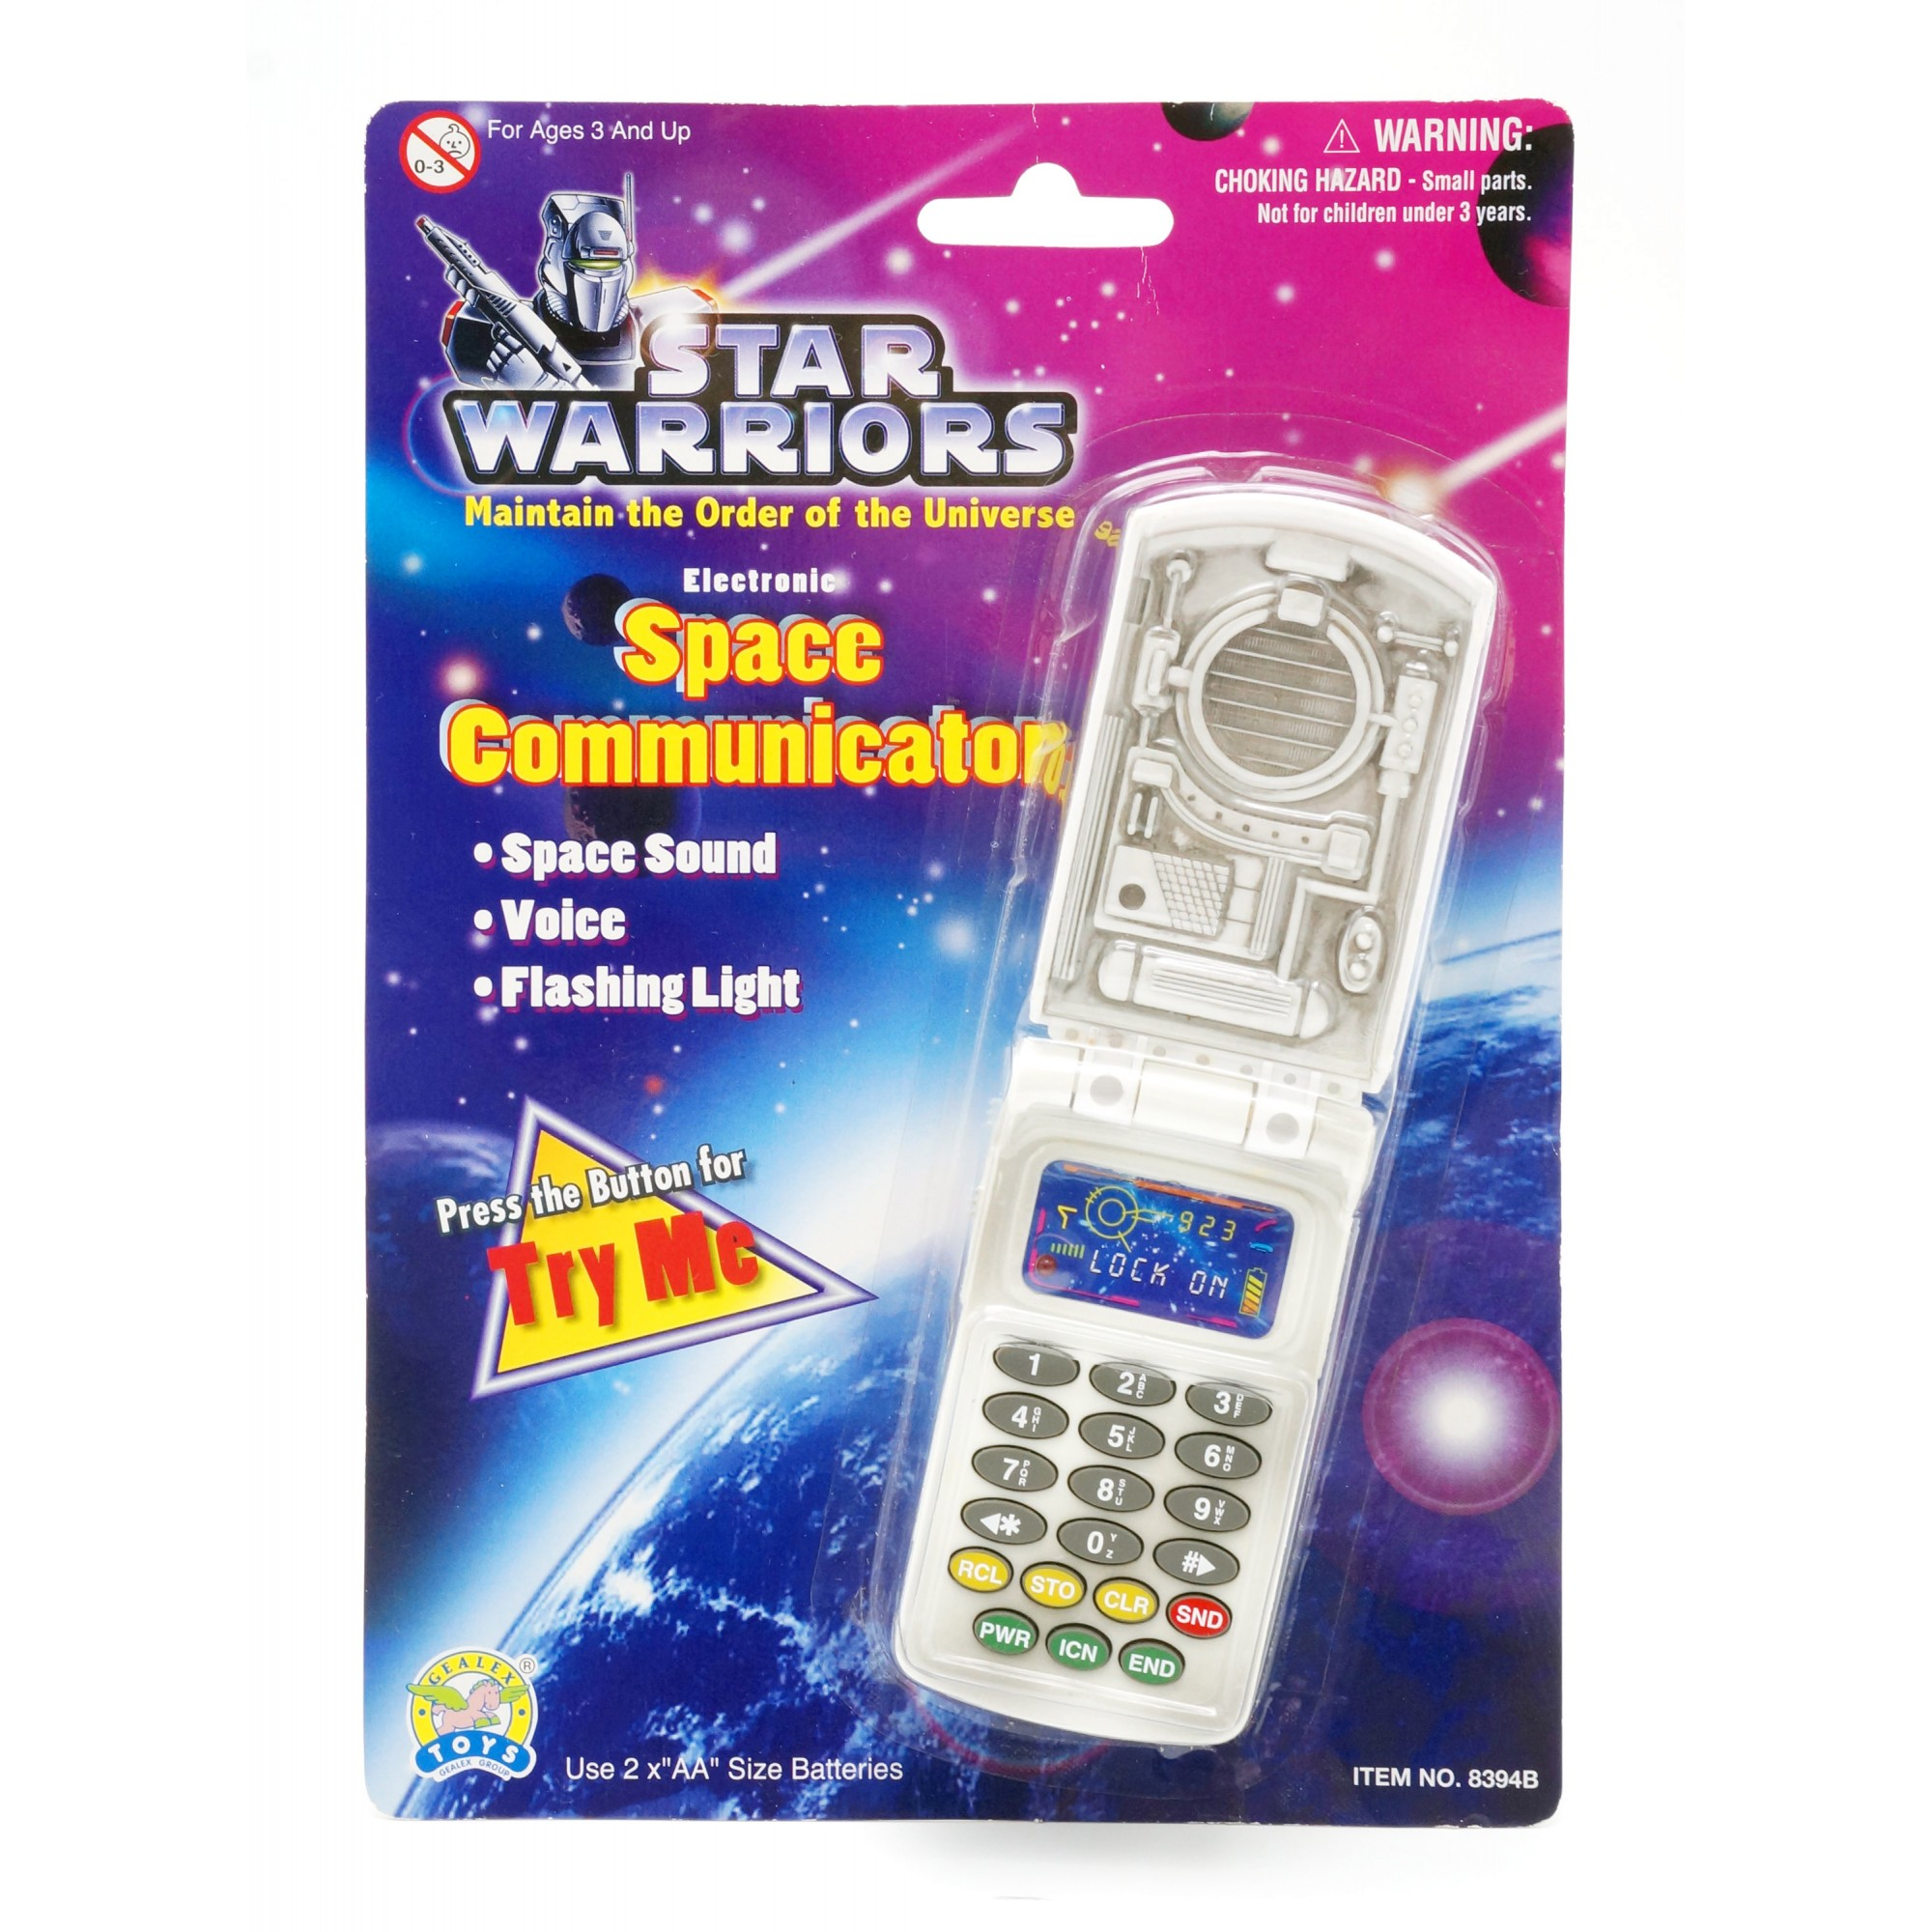 Star Warriors Electronic Space Communicator